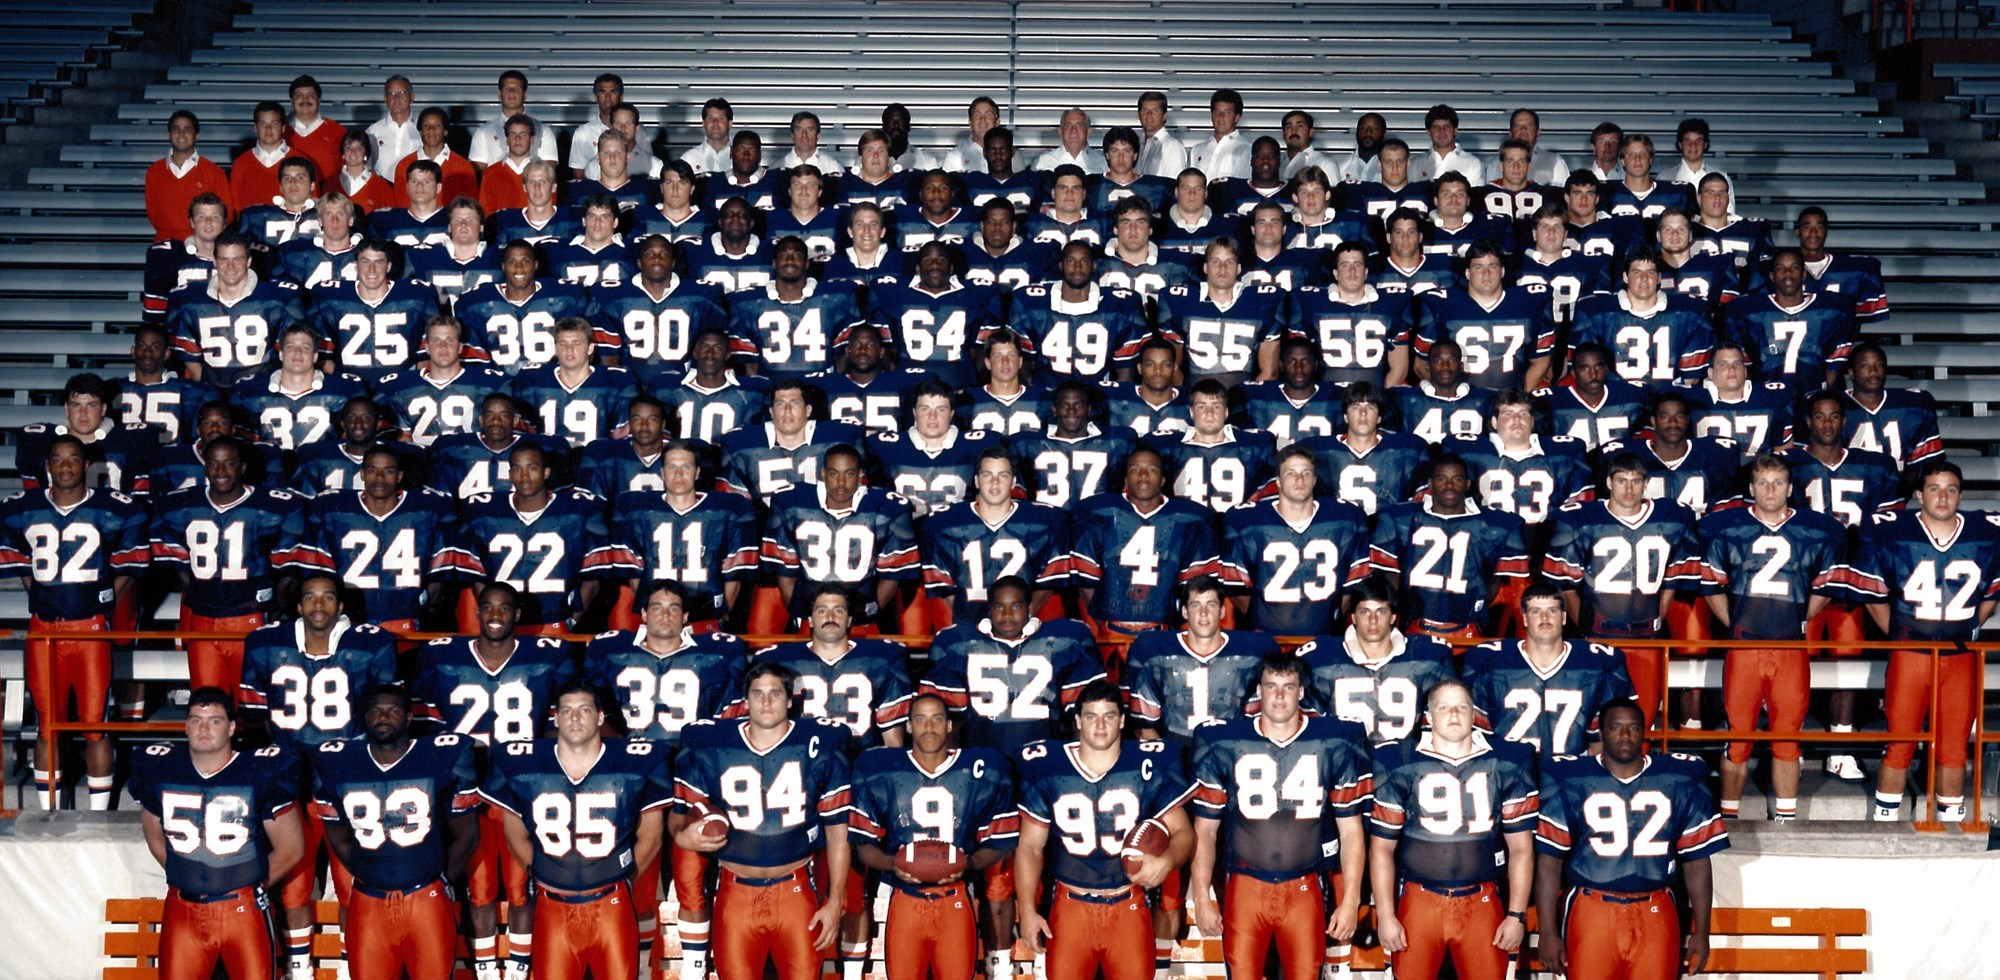 84eaa2f6 The 1987 squad became the second 'Cuse gridiron team to go undefeated after  posting an